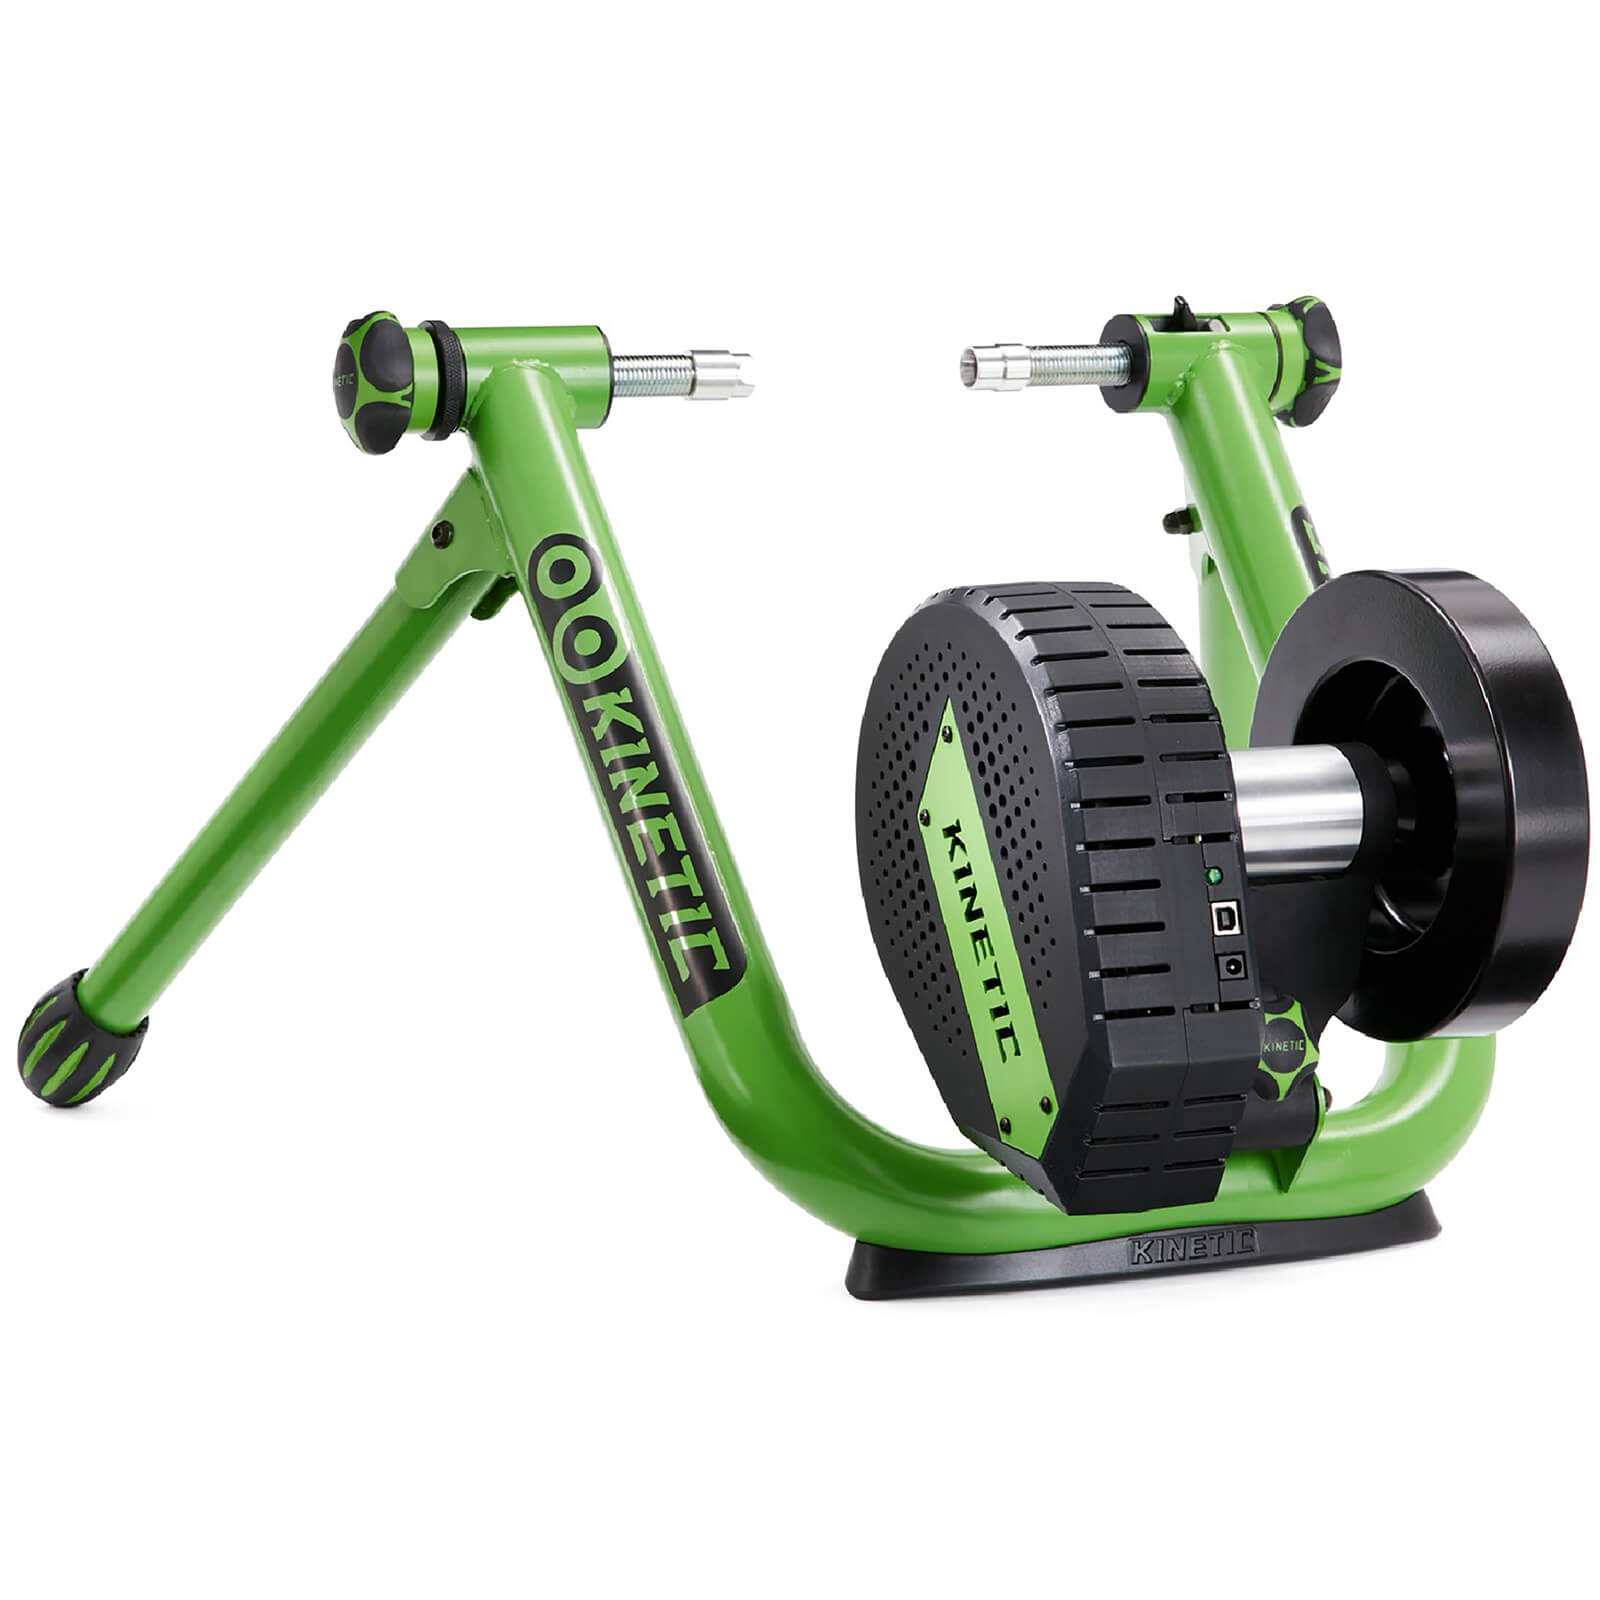 Kurt Kinetic Road Machine Smart Control Trainer